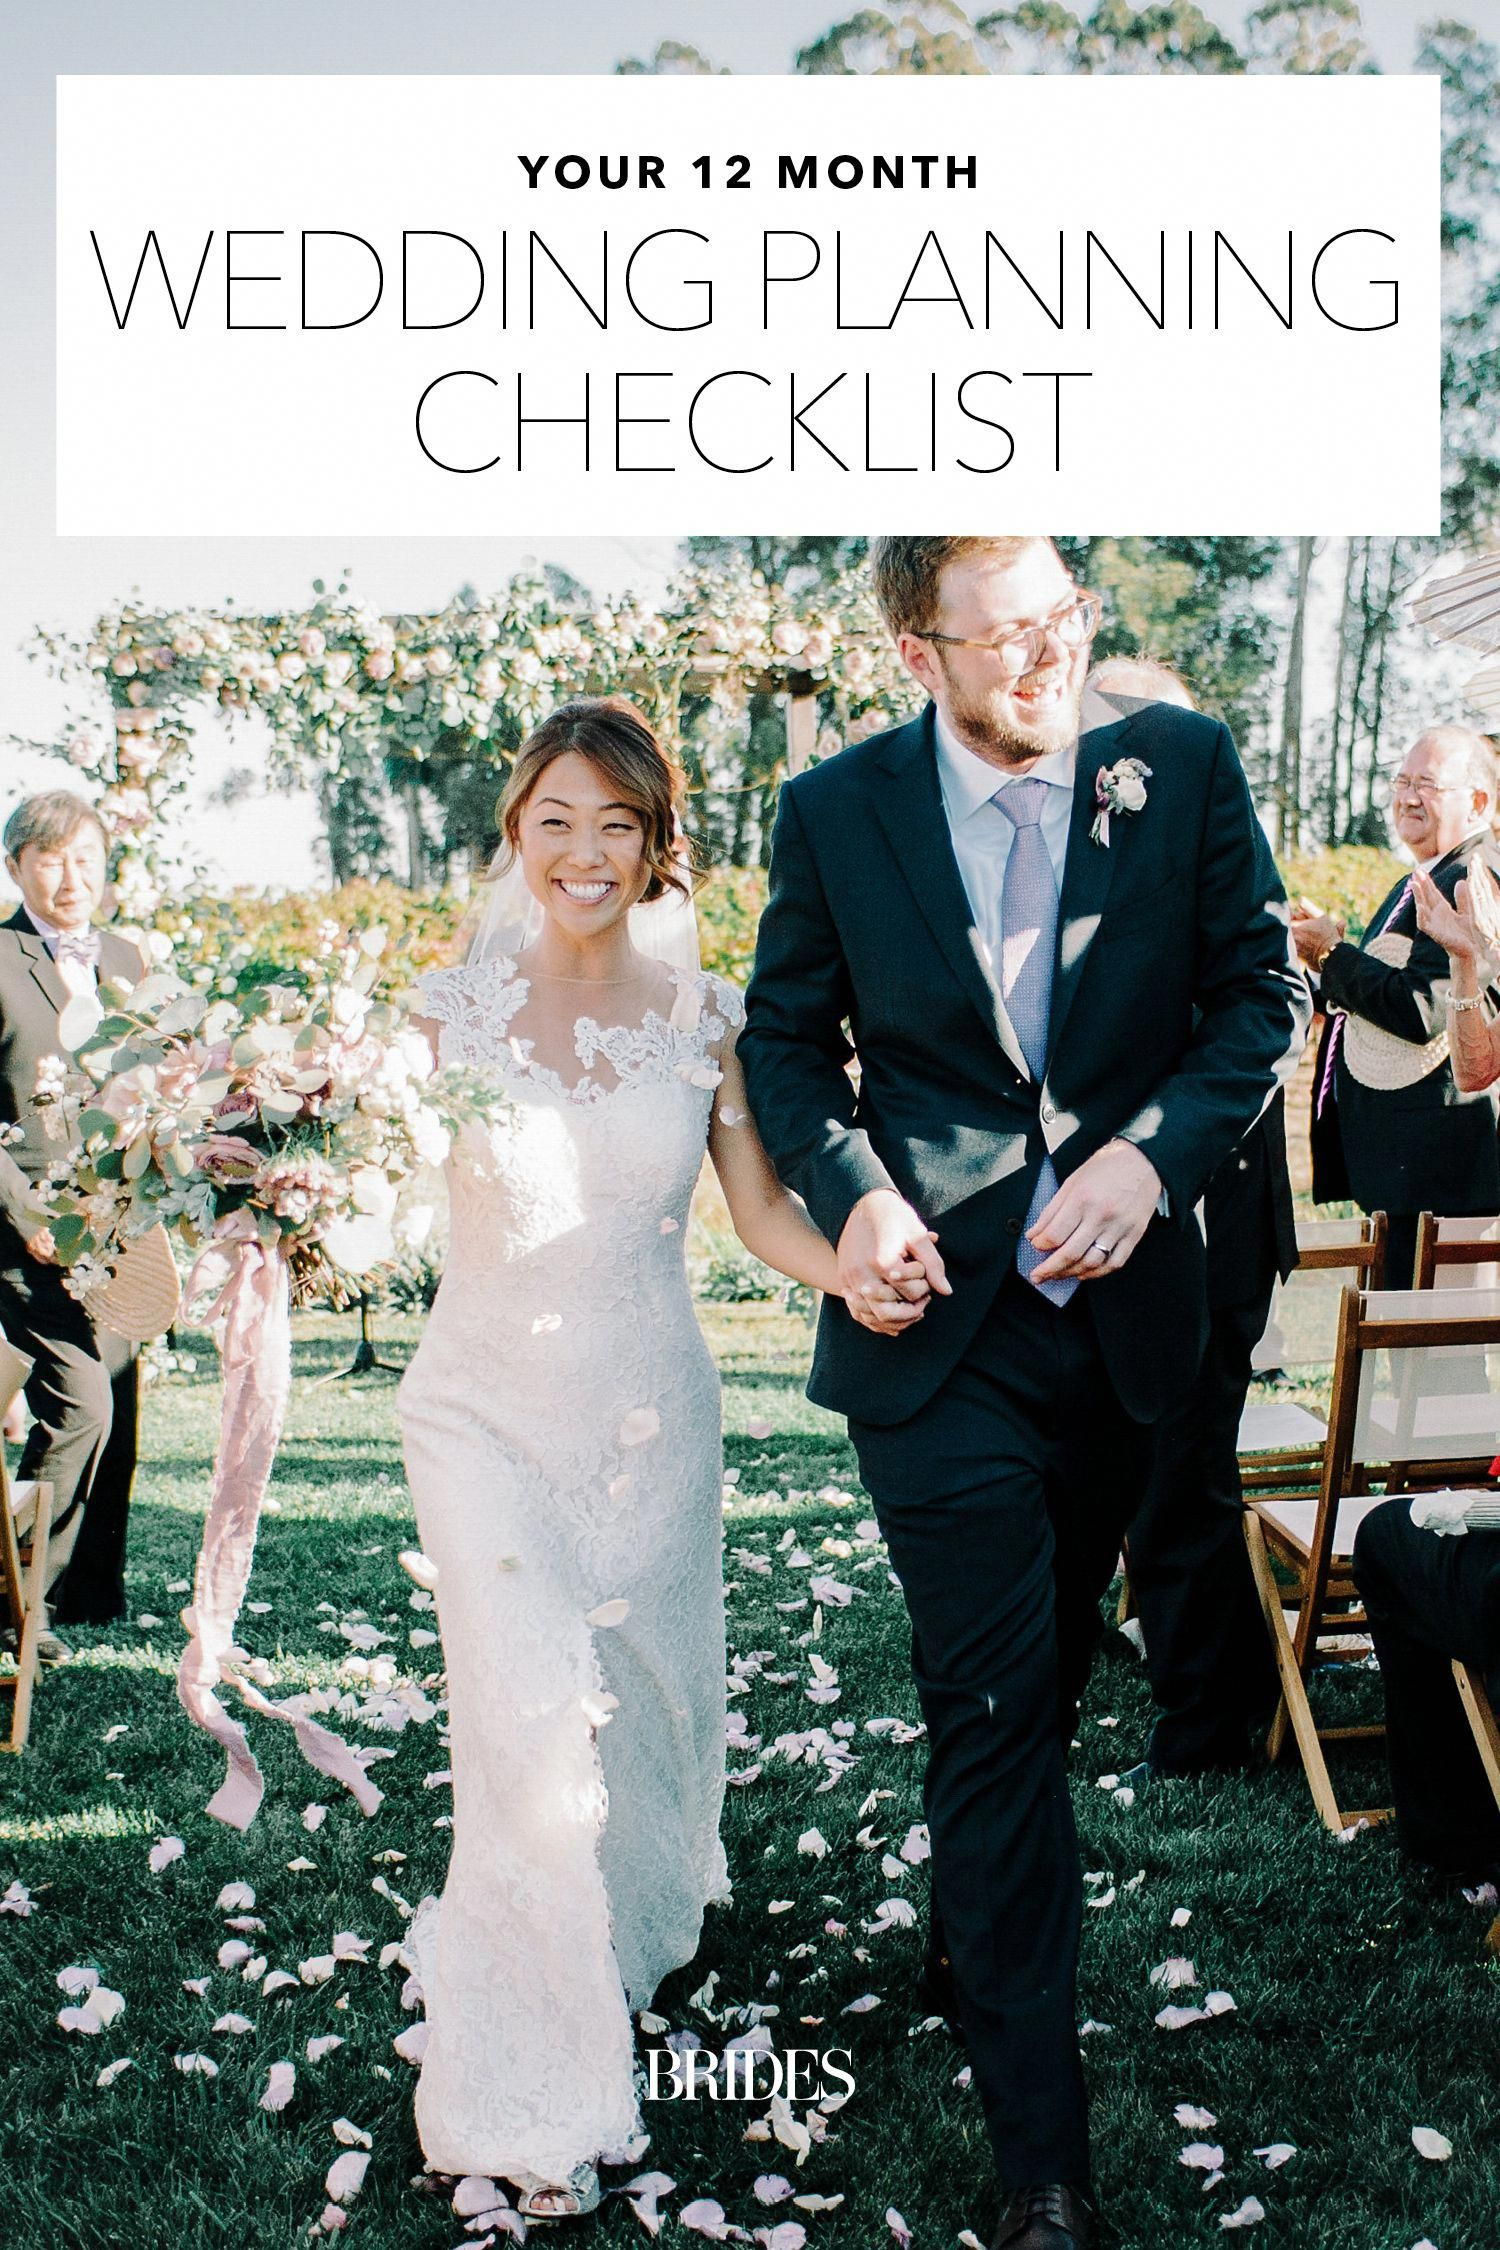 Wedding decorations wedding reception ideas november 2018 Wedding Planning Checklist weddingchecklist  Wedding Planning in